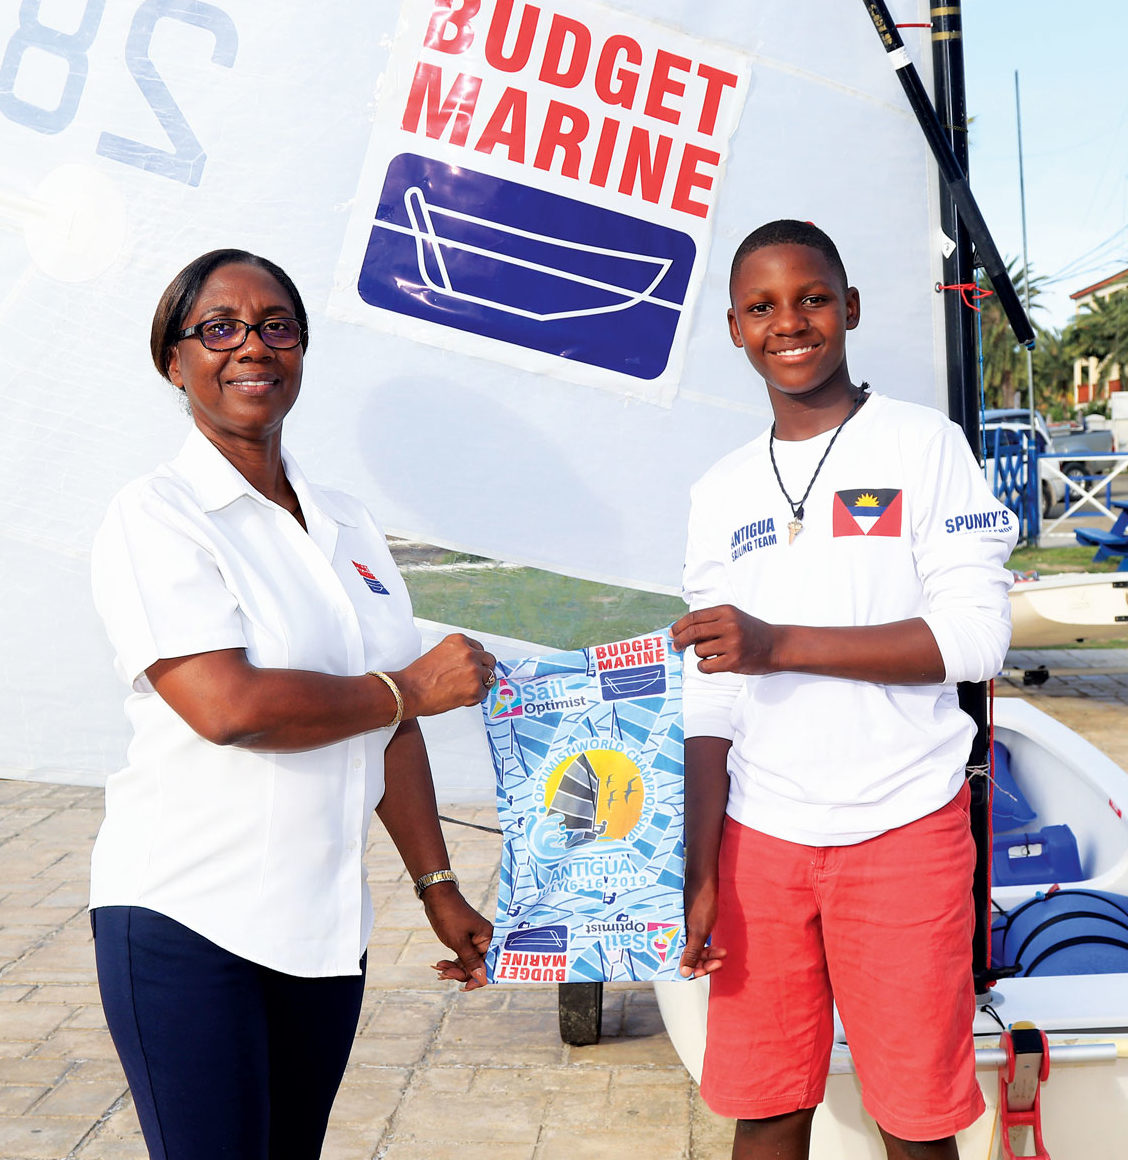 Louisa Norris, General manager Budget Marine Antigua and Shanoy Malone, member of Antigua and Barbuda's Optimist World Championship Team.